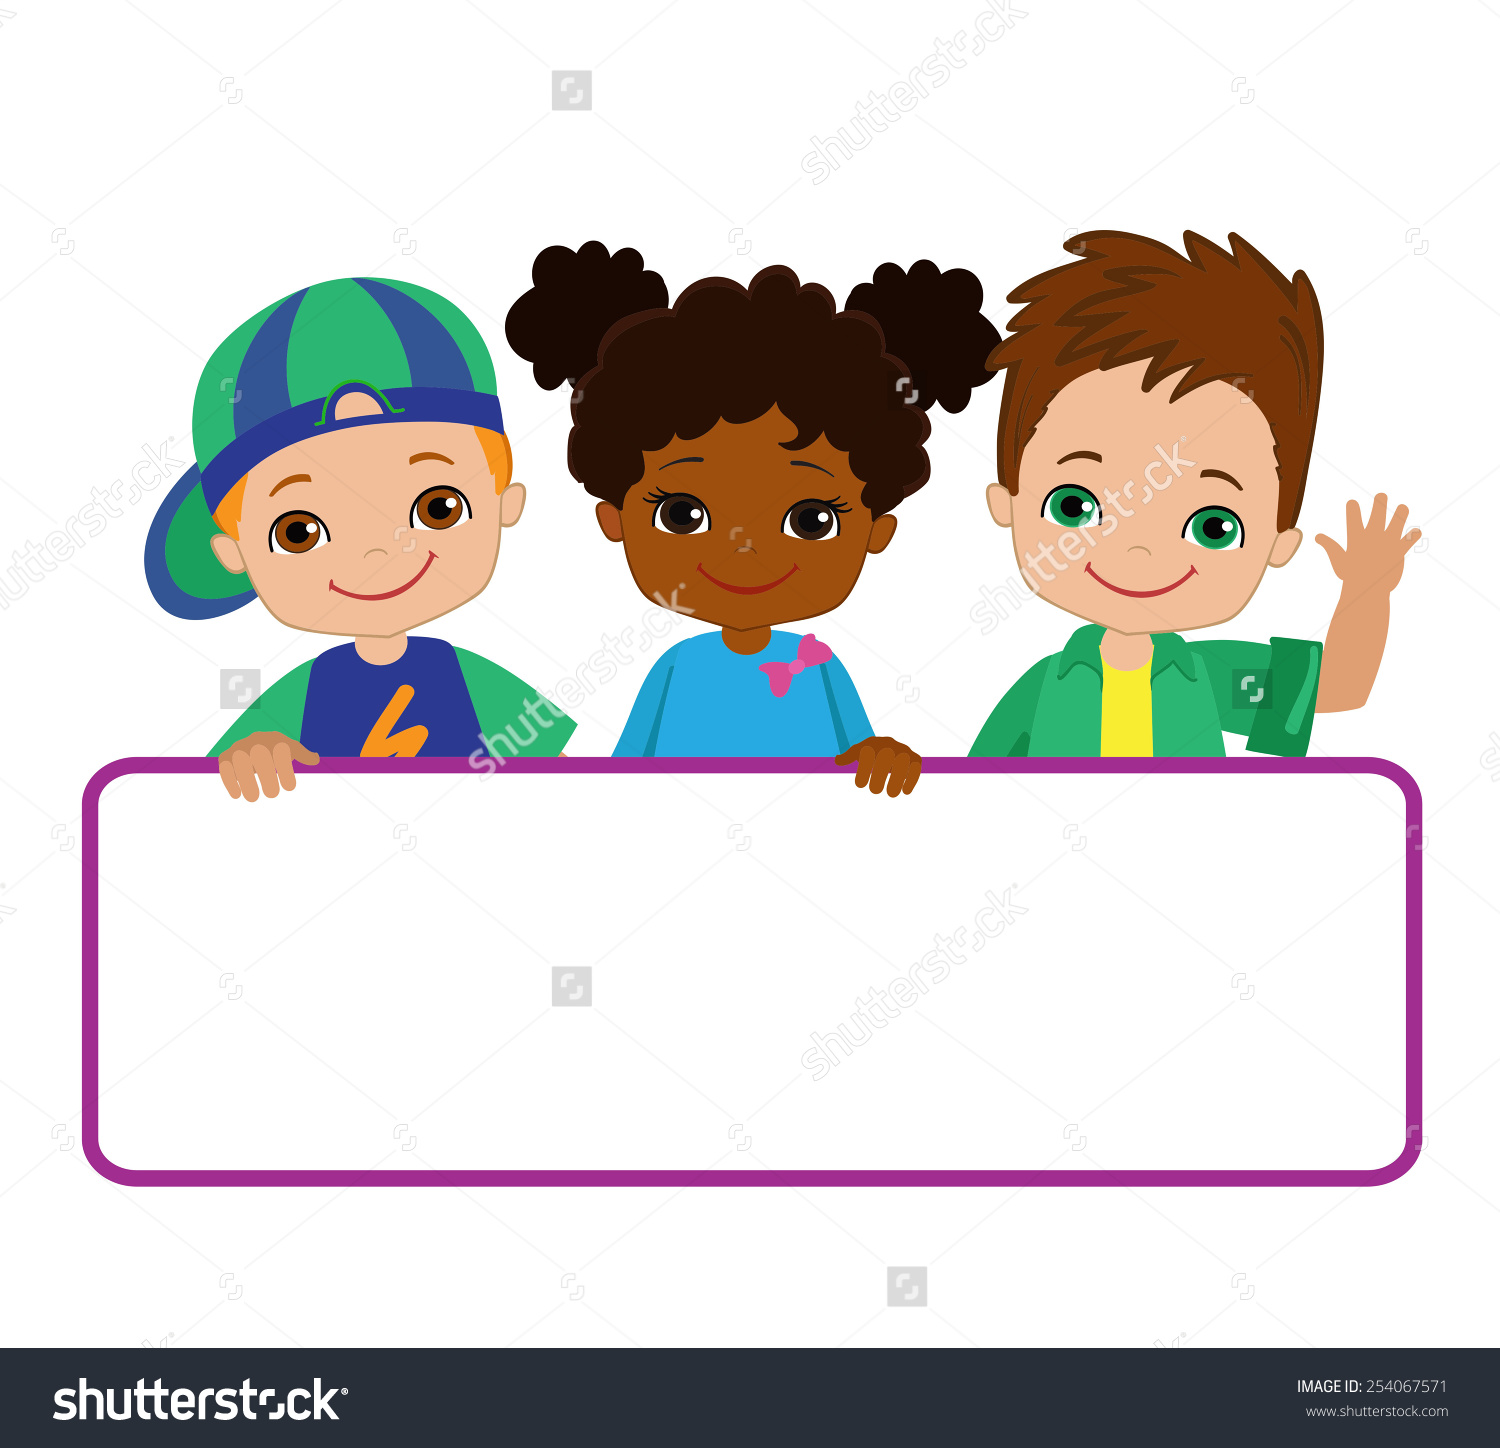 Kids Signs Bricht Kids Frame Board Stock Vector 254067571.